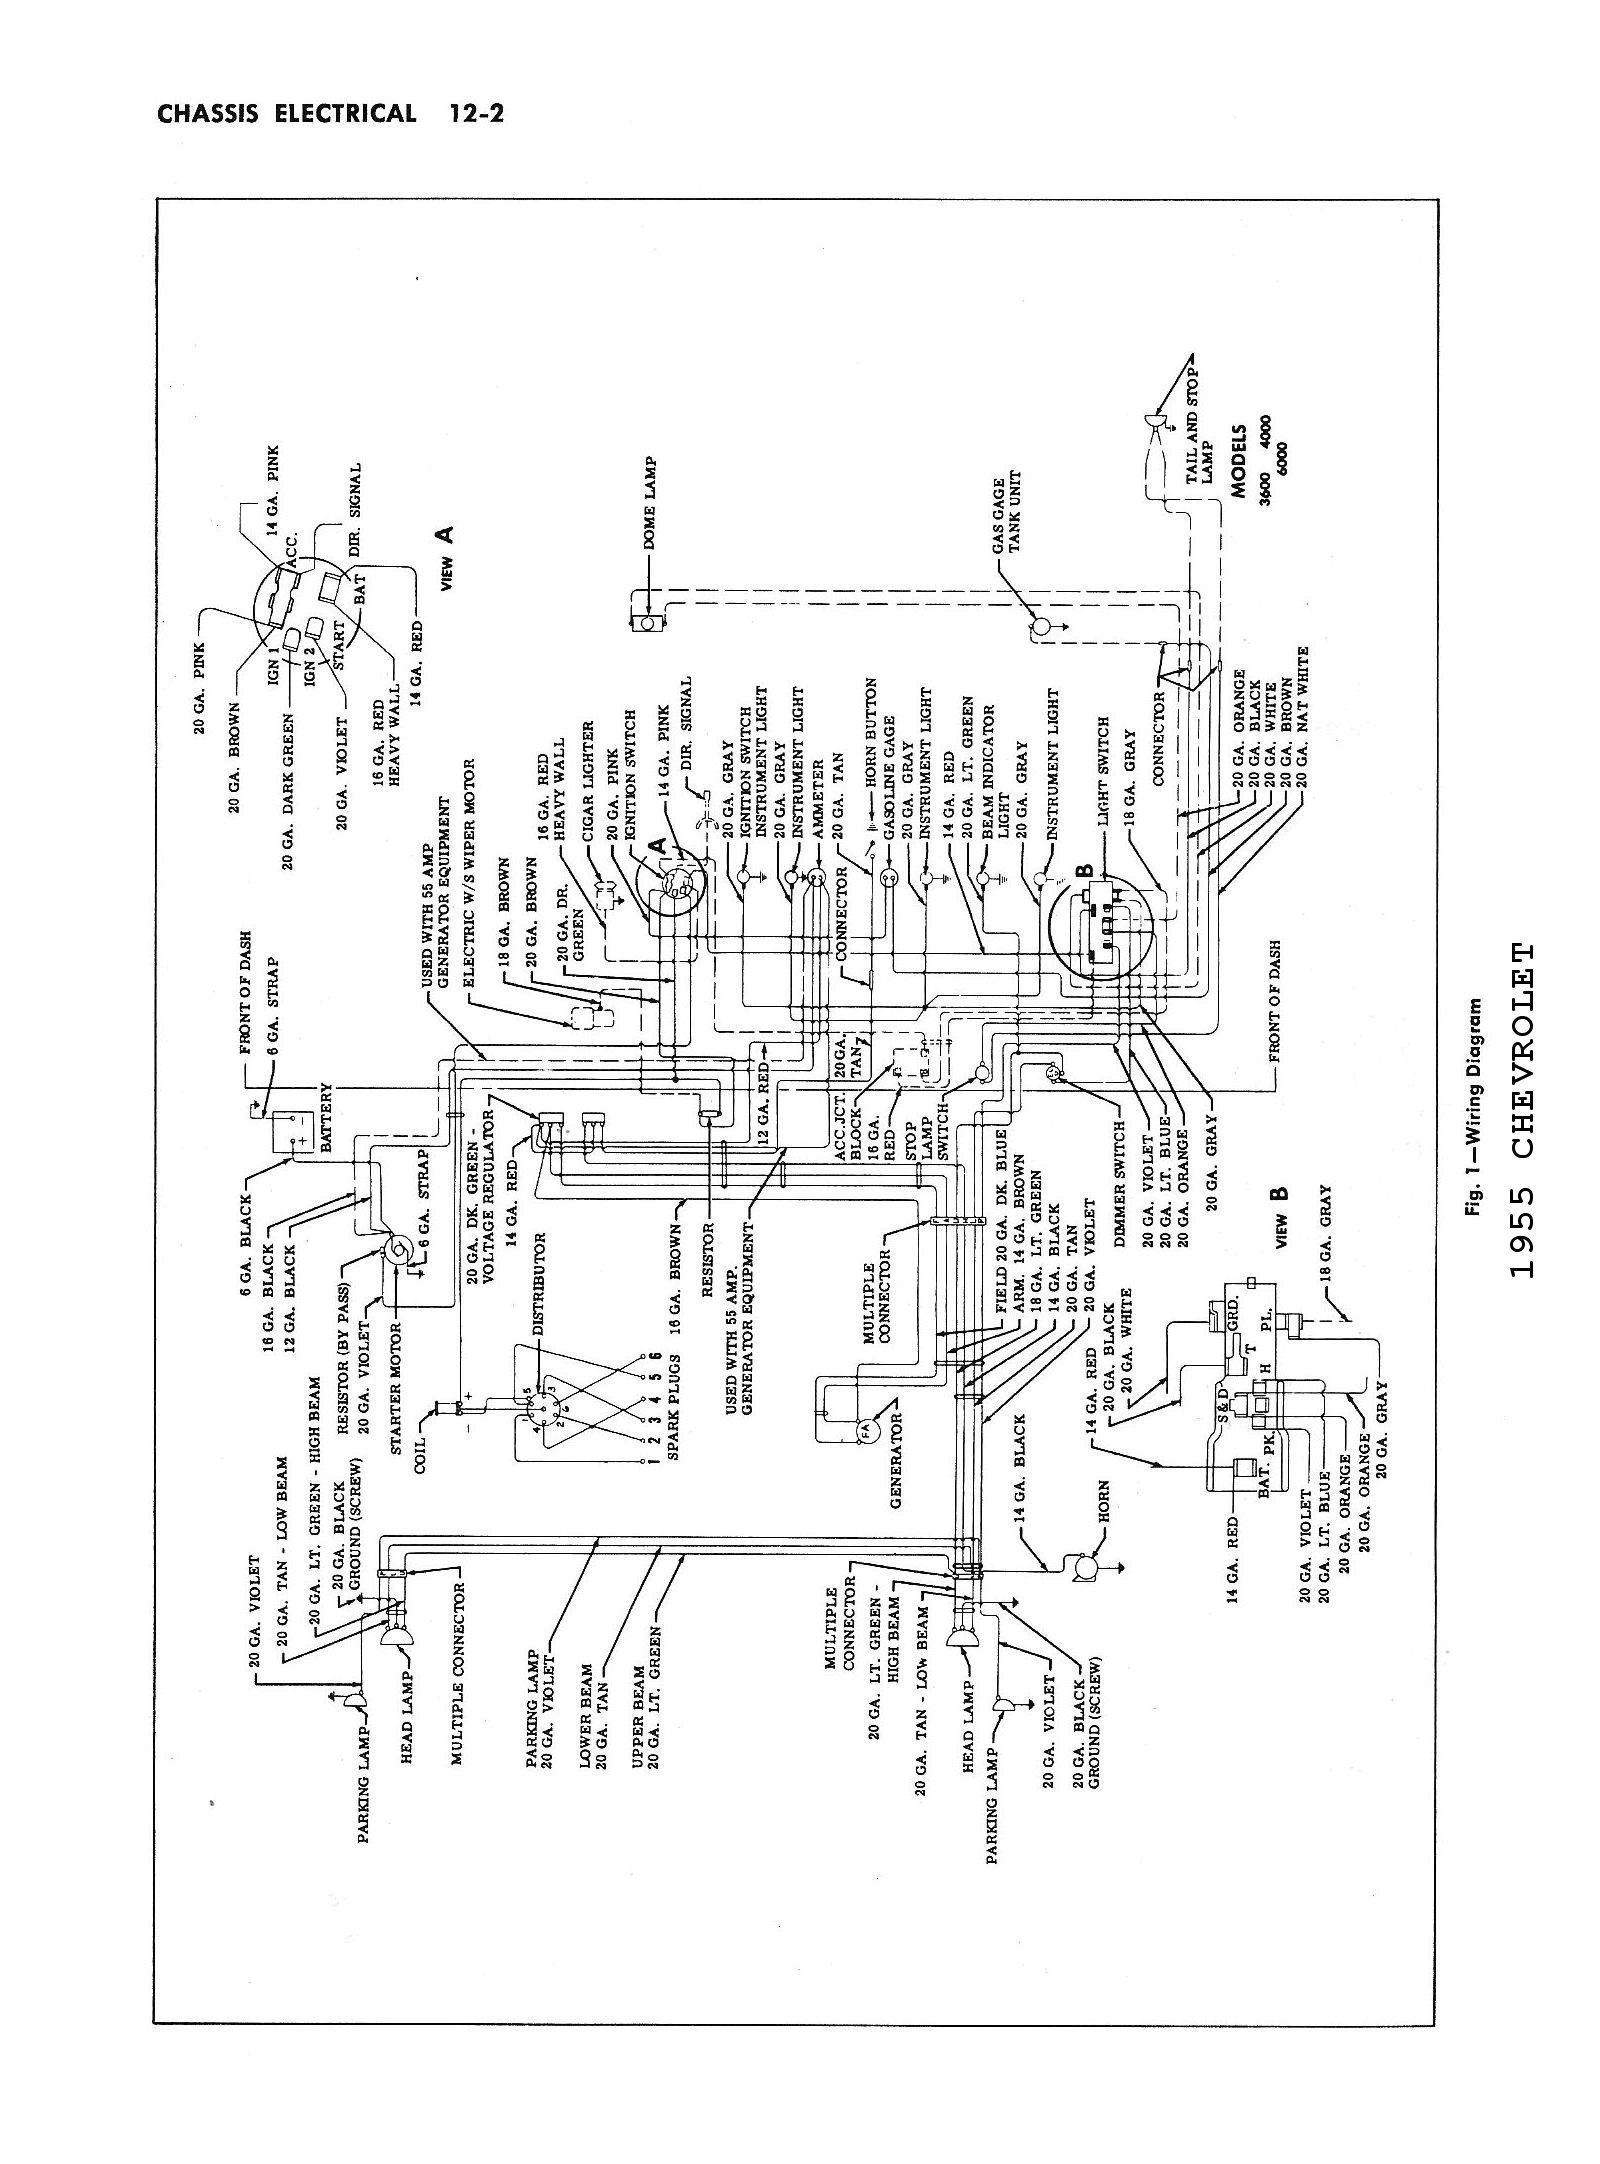 hight resolution of 1959 gmc truck headlight switch wiring wiring diagram expert chevy truck headlight switch wiring diagram free picture